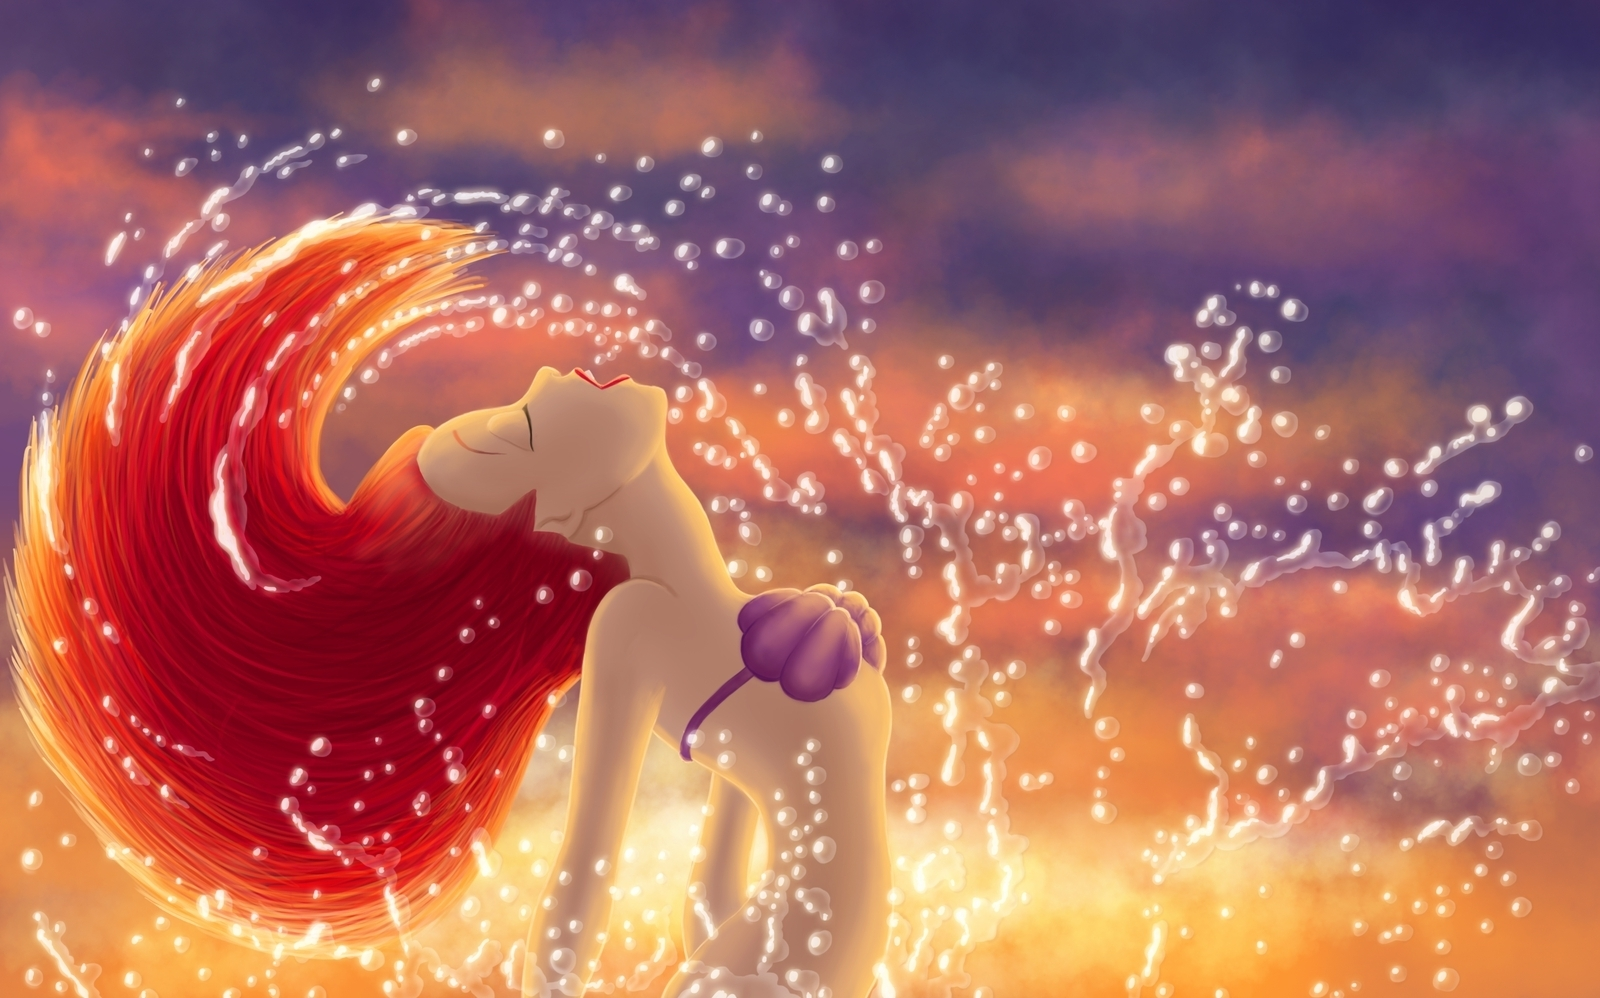 10 new the little mermaid desktop wallpaper full hd 1080p for pc